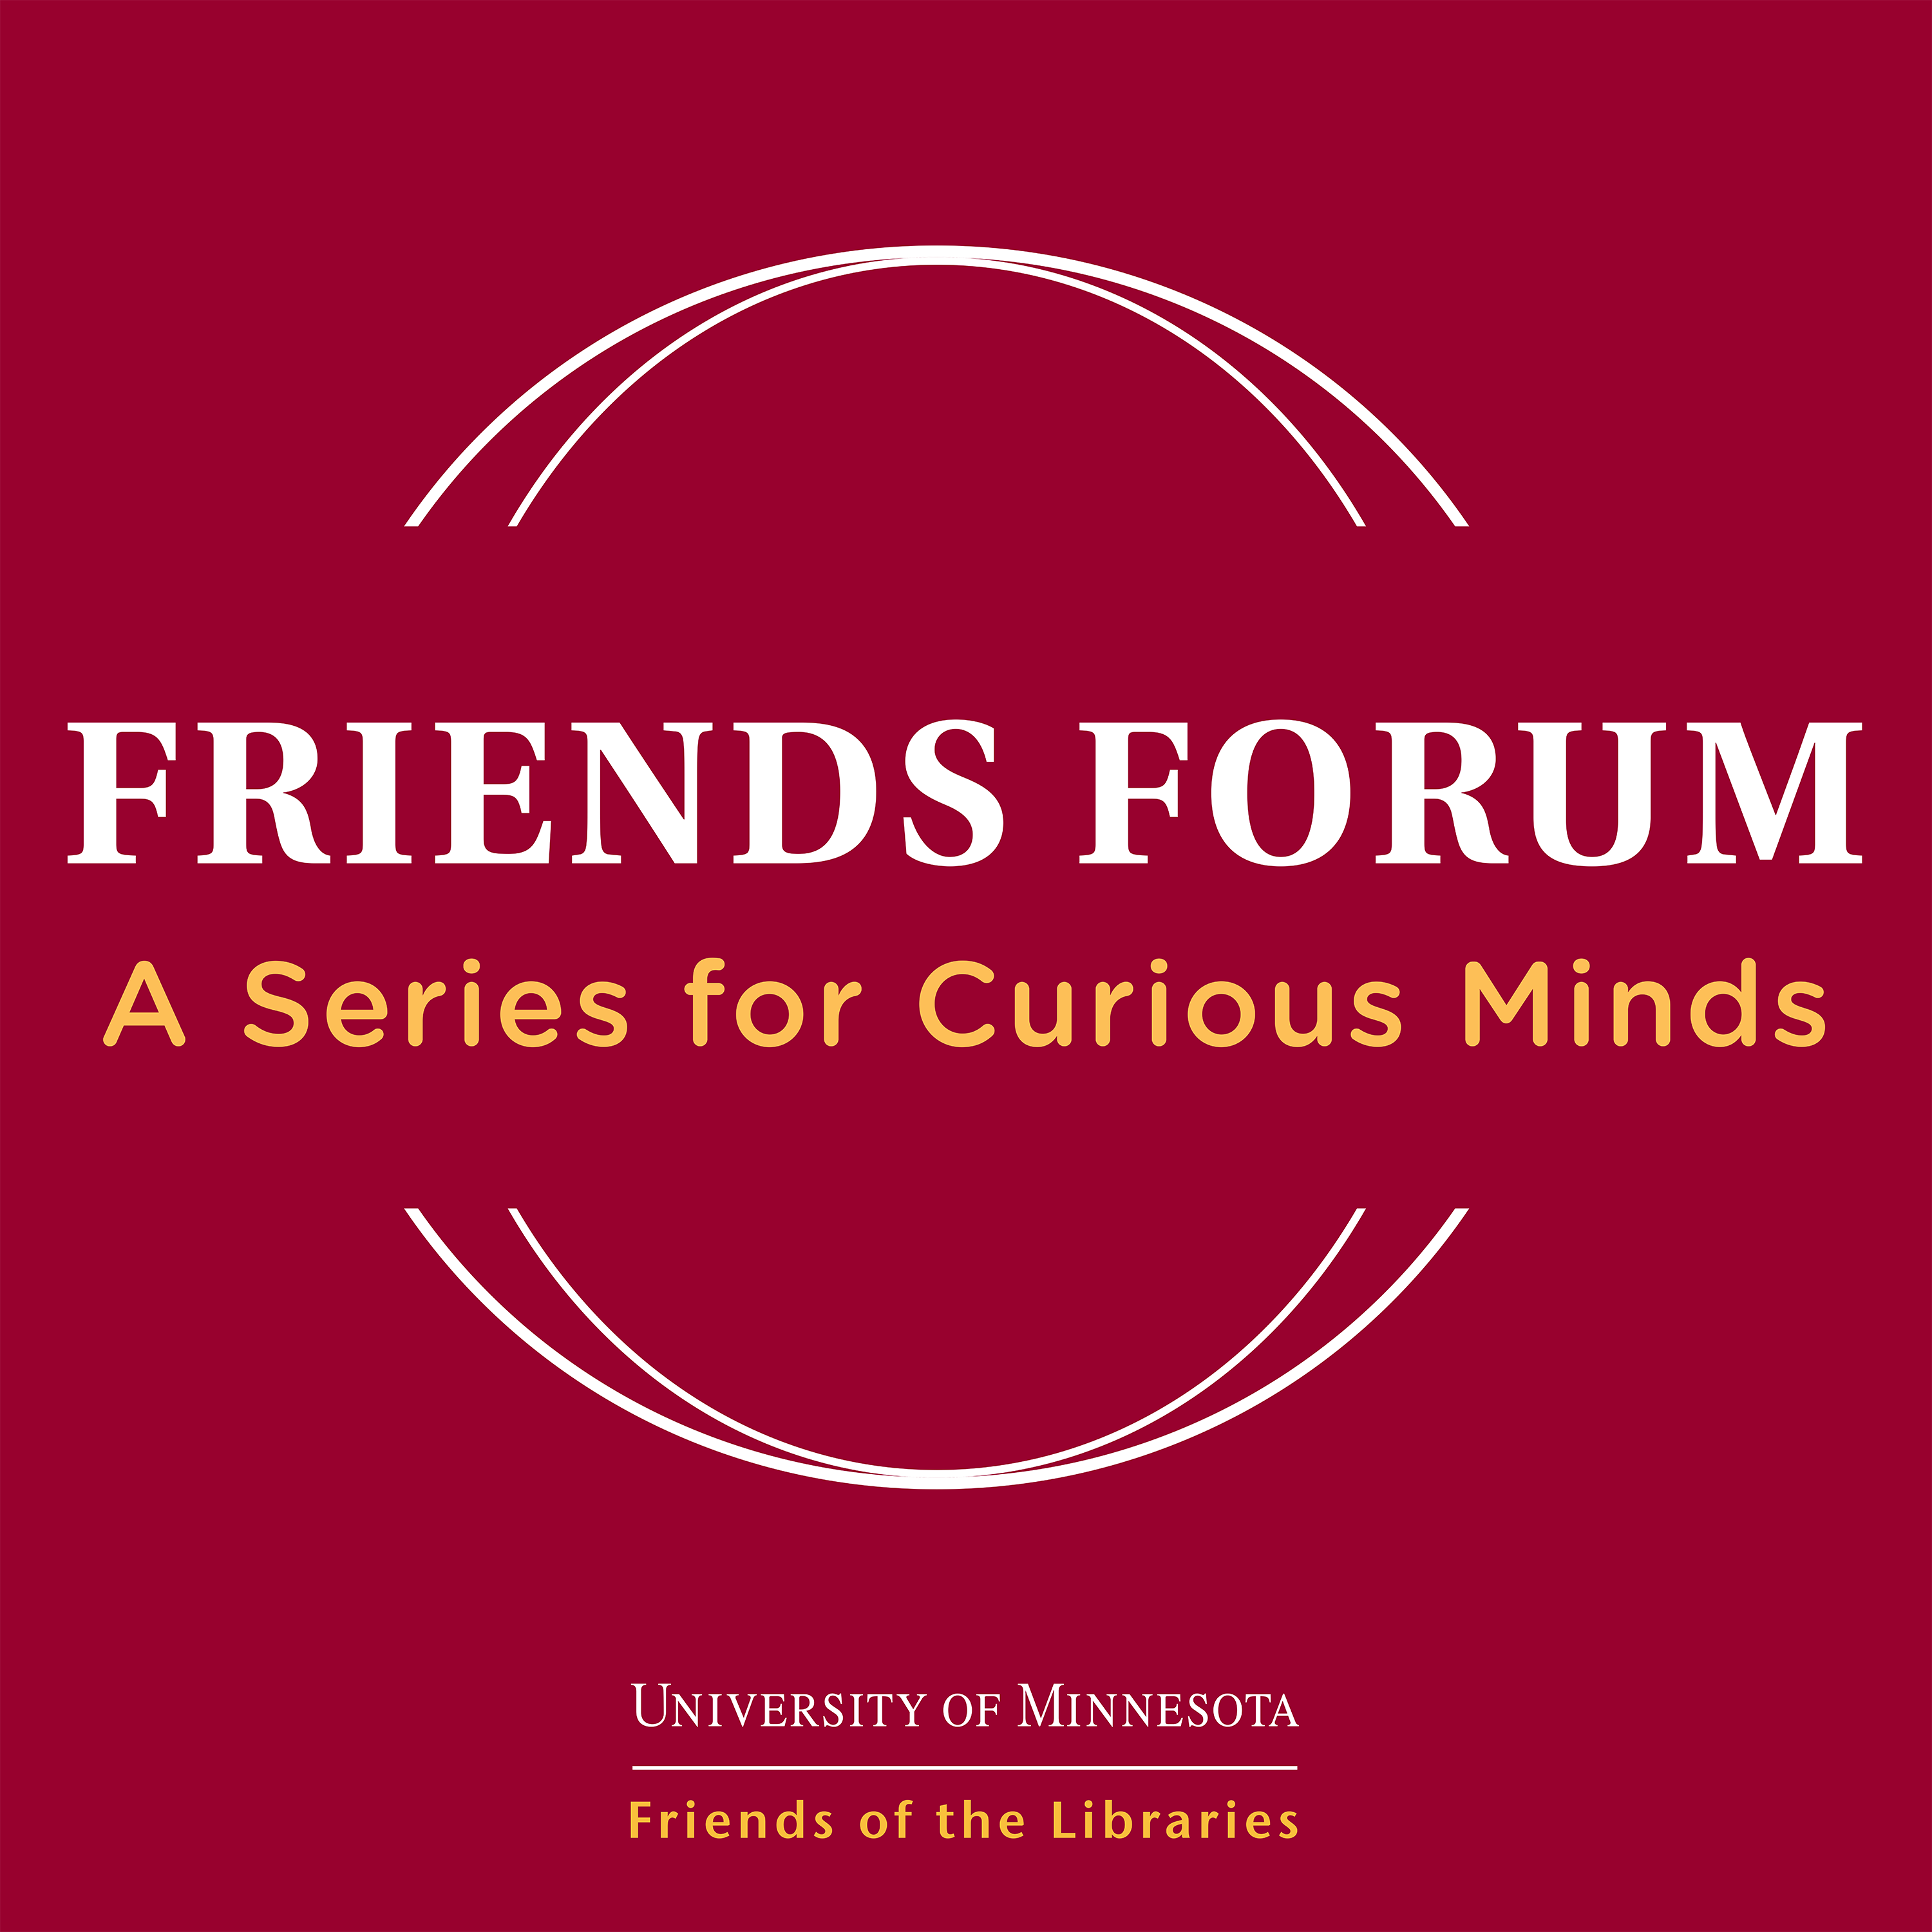 Friends Forum: A Series for Curious Minds